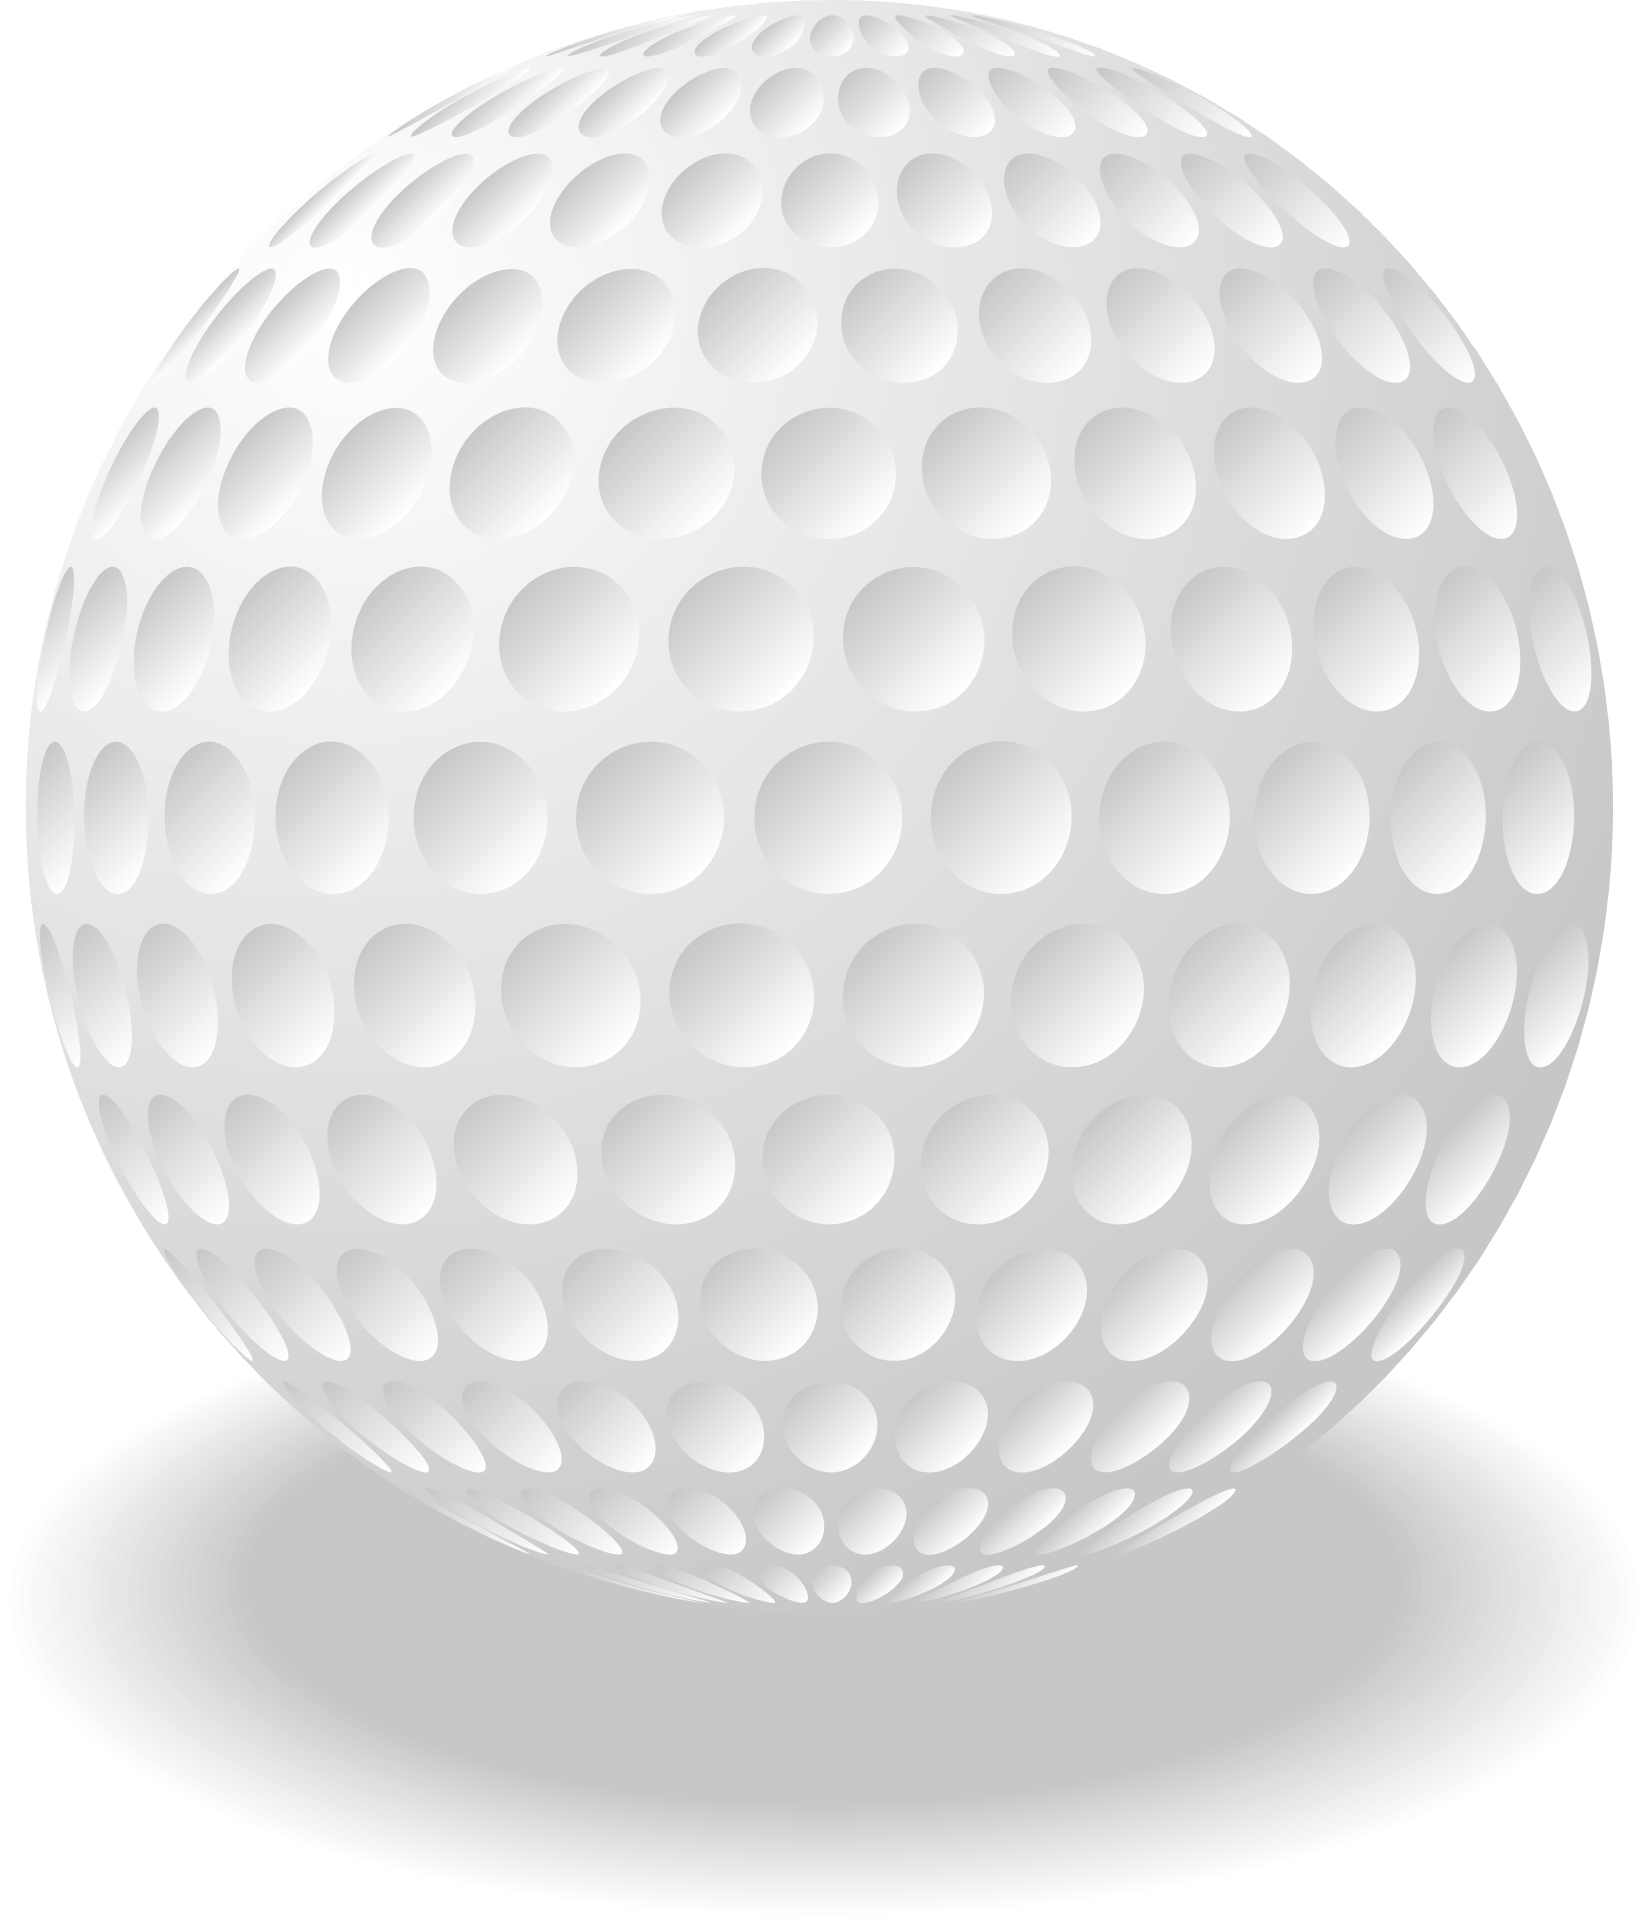 White Golf Ball Vecto